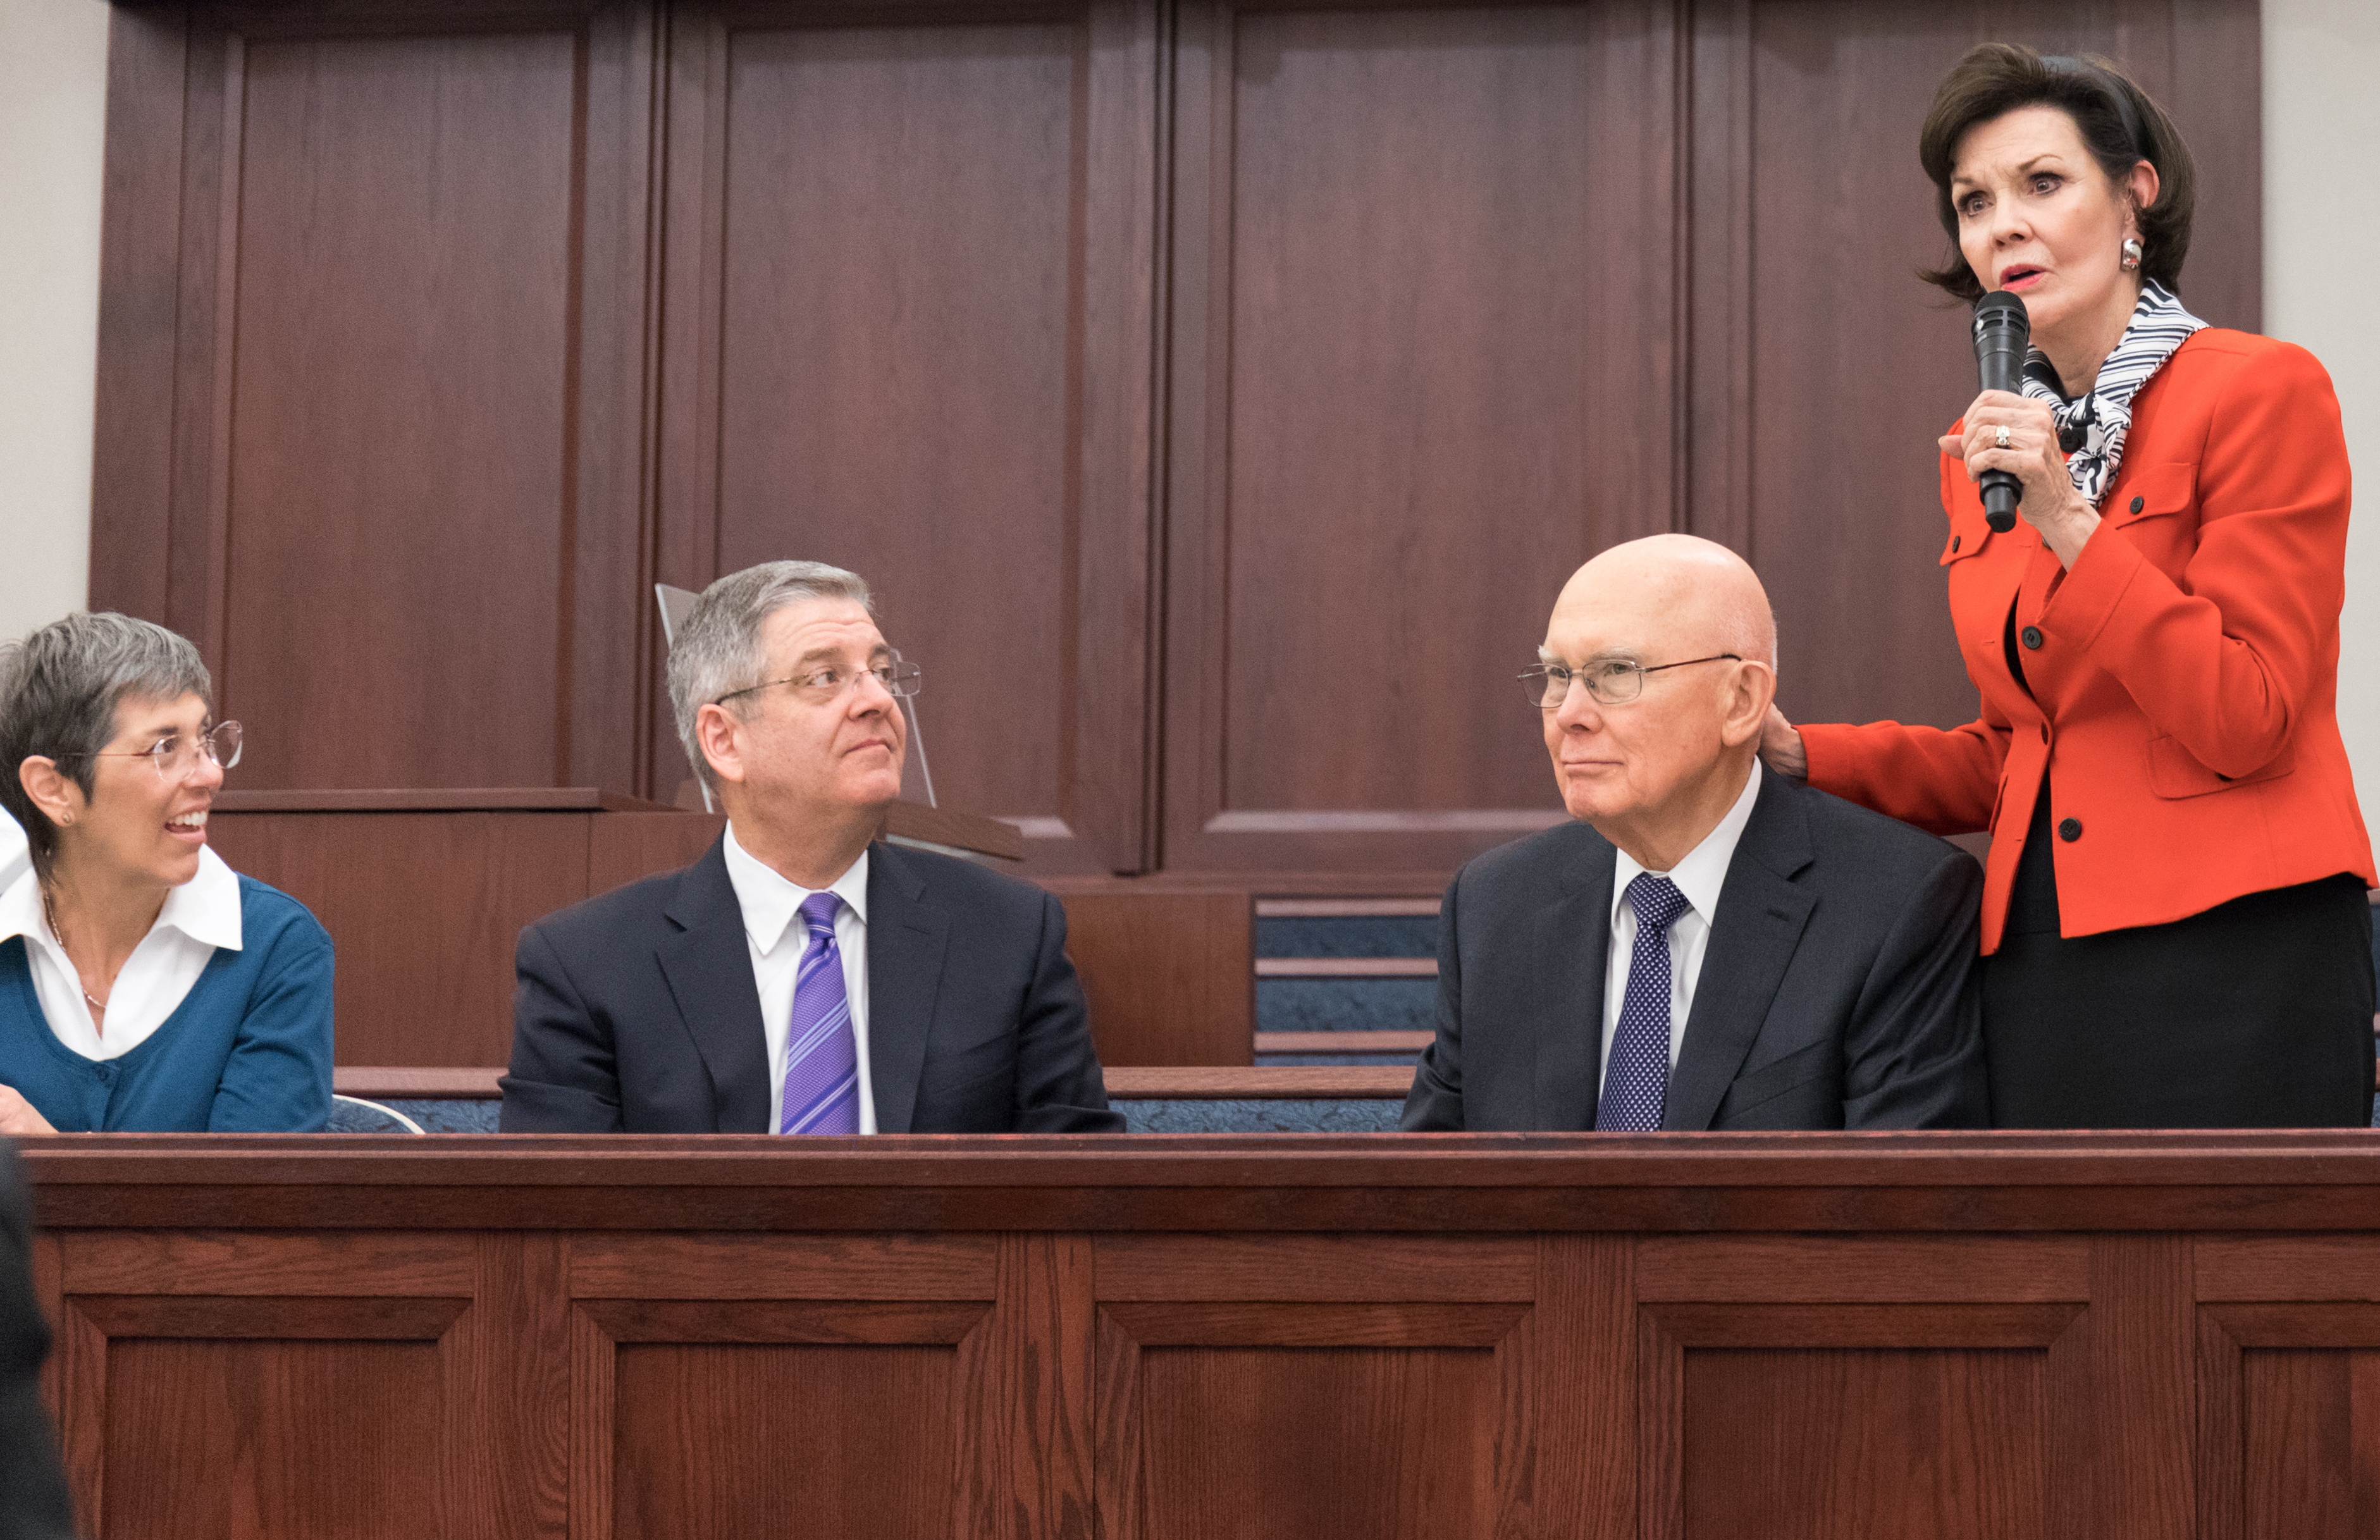 Sister Kristen Oaks shares insight during a Feb. 2, 2019, devotional for young married couples in downtown Chicago. Also pictured are Sister Auralee Scott, Elder K. David Scott and President Dallin H. Oaks.